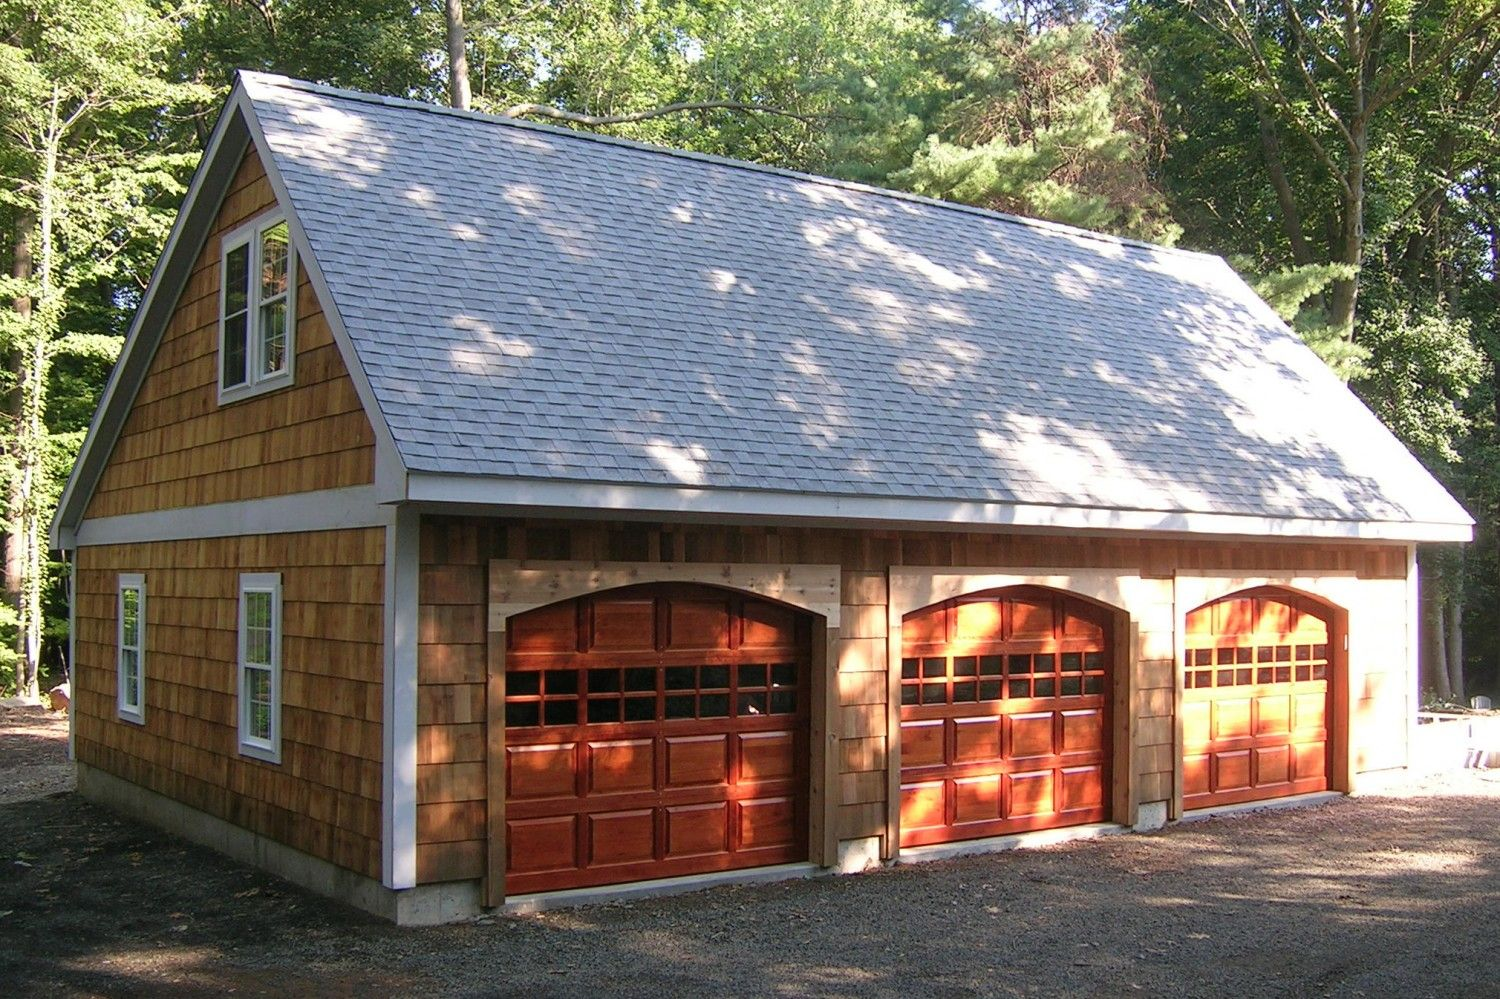 Berkshire: Saltbox-Style 1 ½ Story Garage: The Barn Yard & Great